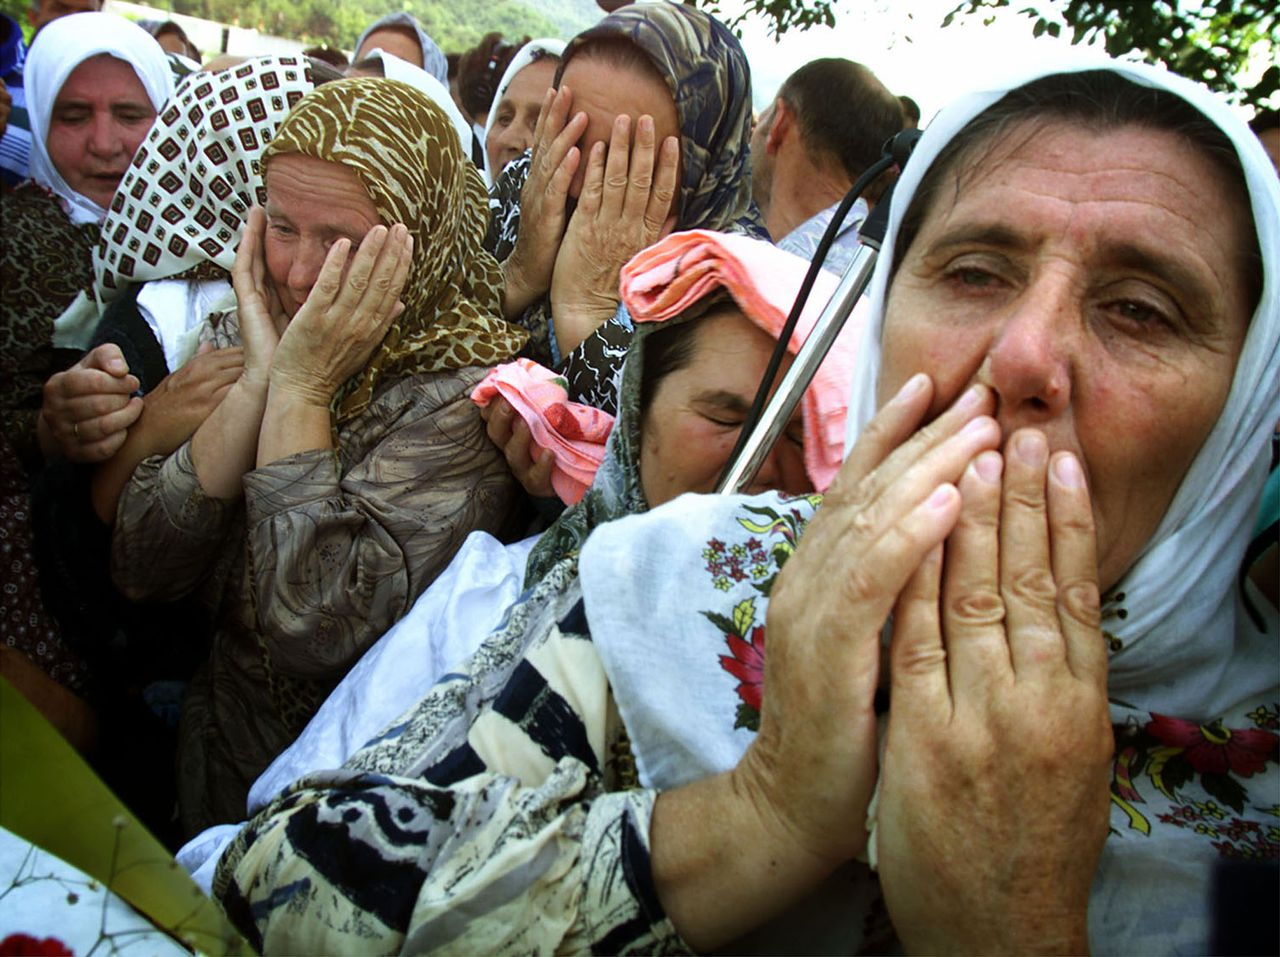 Bosnische vrouwen in 2005 in Potocari bij de begrafenis van een familielid, vermoord door Bosnische Serviërs na vertrek uit Srebrenica Foto Damir Sagolj/Reuters Bosnian Muslim women cry as they gather around a foundation stone for a memorial centre in Potocari, in the wartime U.N. protected enclave of Srebrenica July 11, 2001. Thousands of Bosnian Muslims returned to the site of the Srebrenica massacre to launch a memorial on the sixth anniversary of what is seen as the worst Europe's war crime since the World War Two. DS/CRB